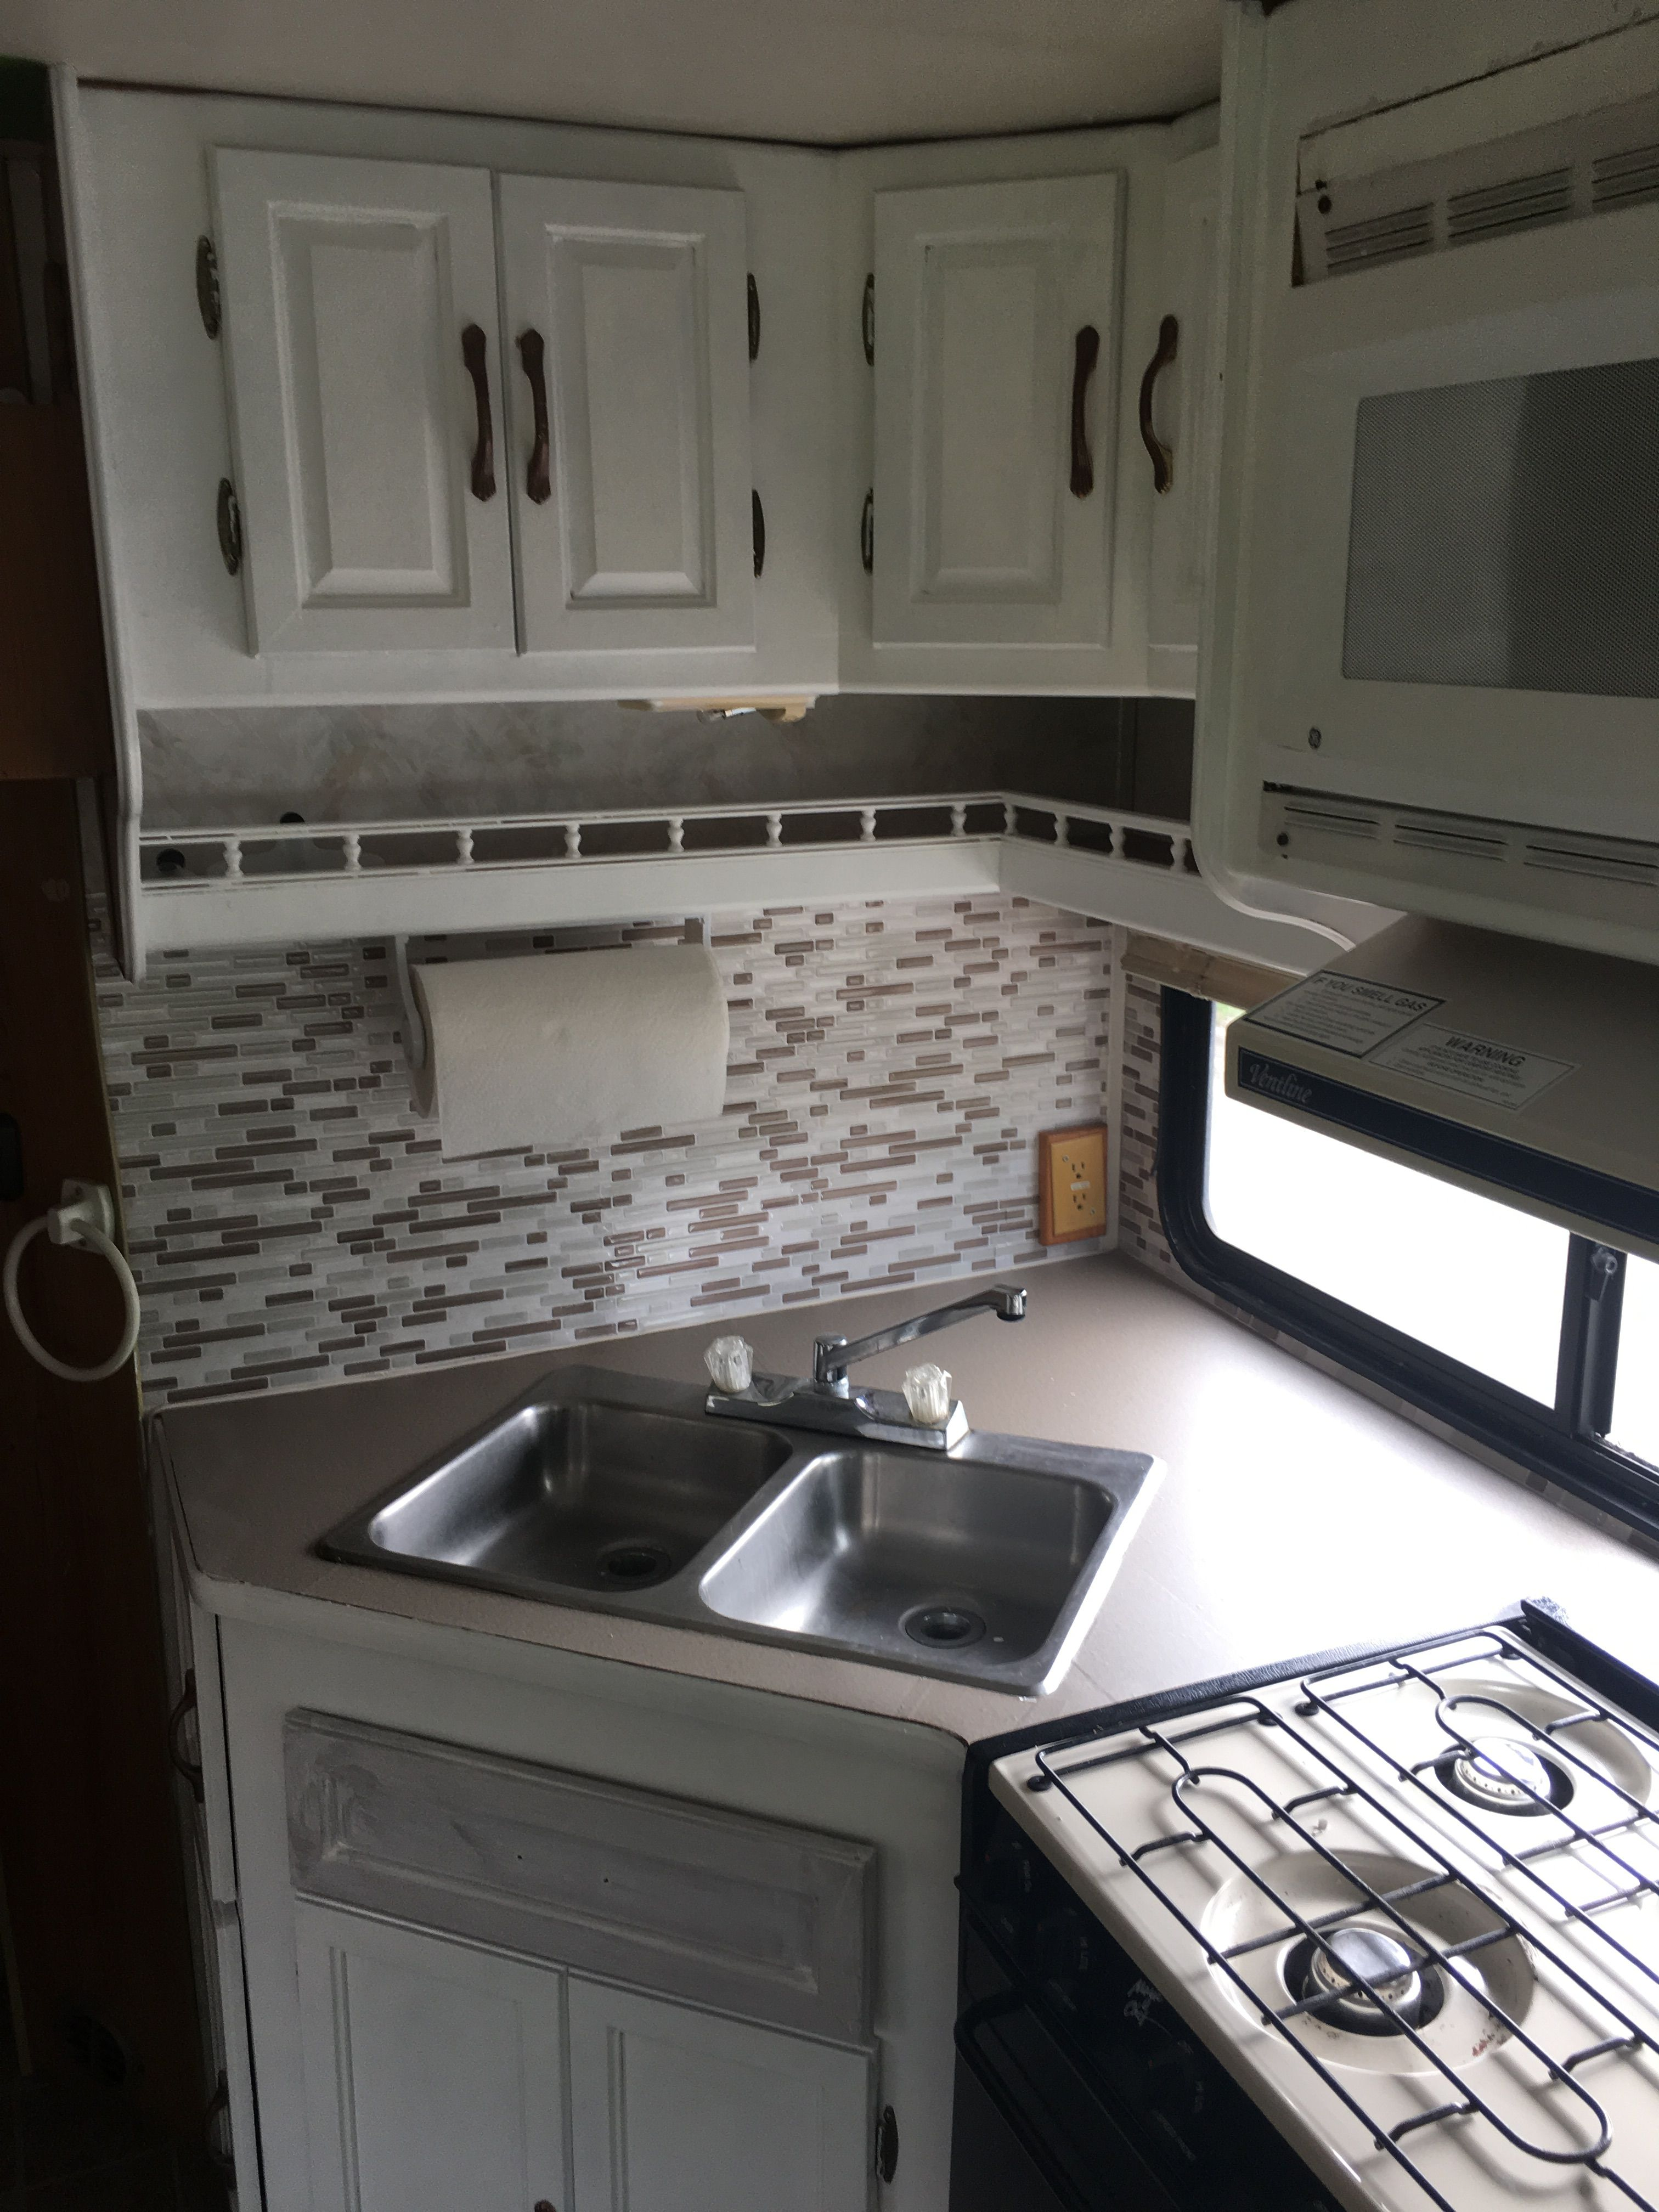 After I added peel and stick backsplash and contact paper to counter